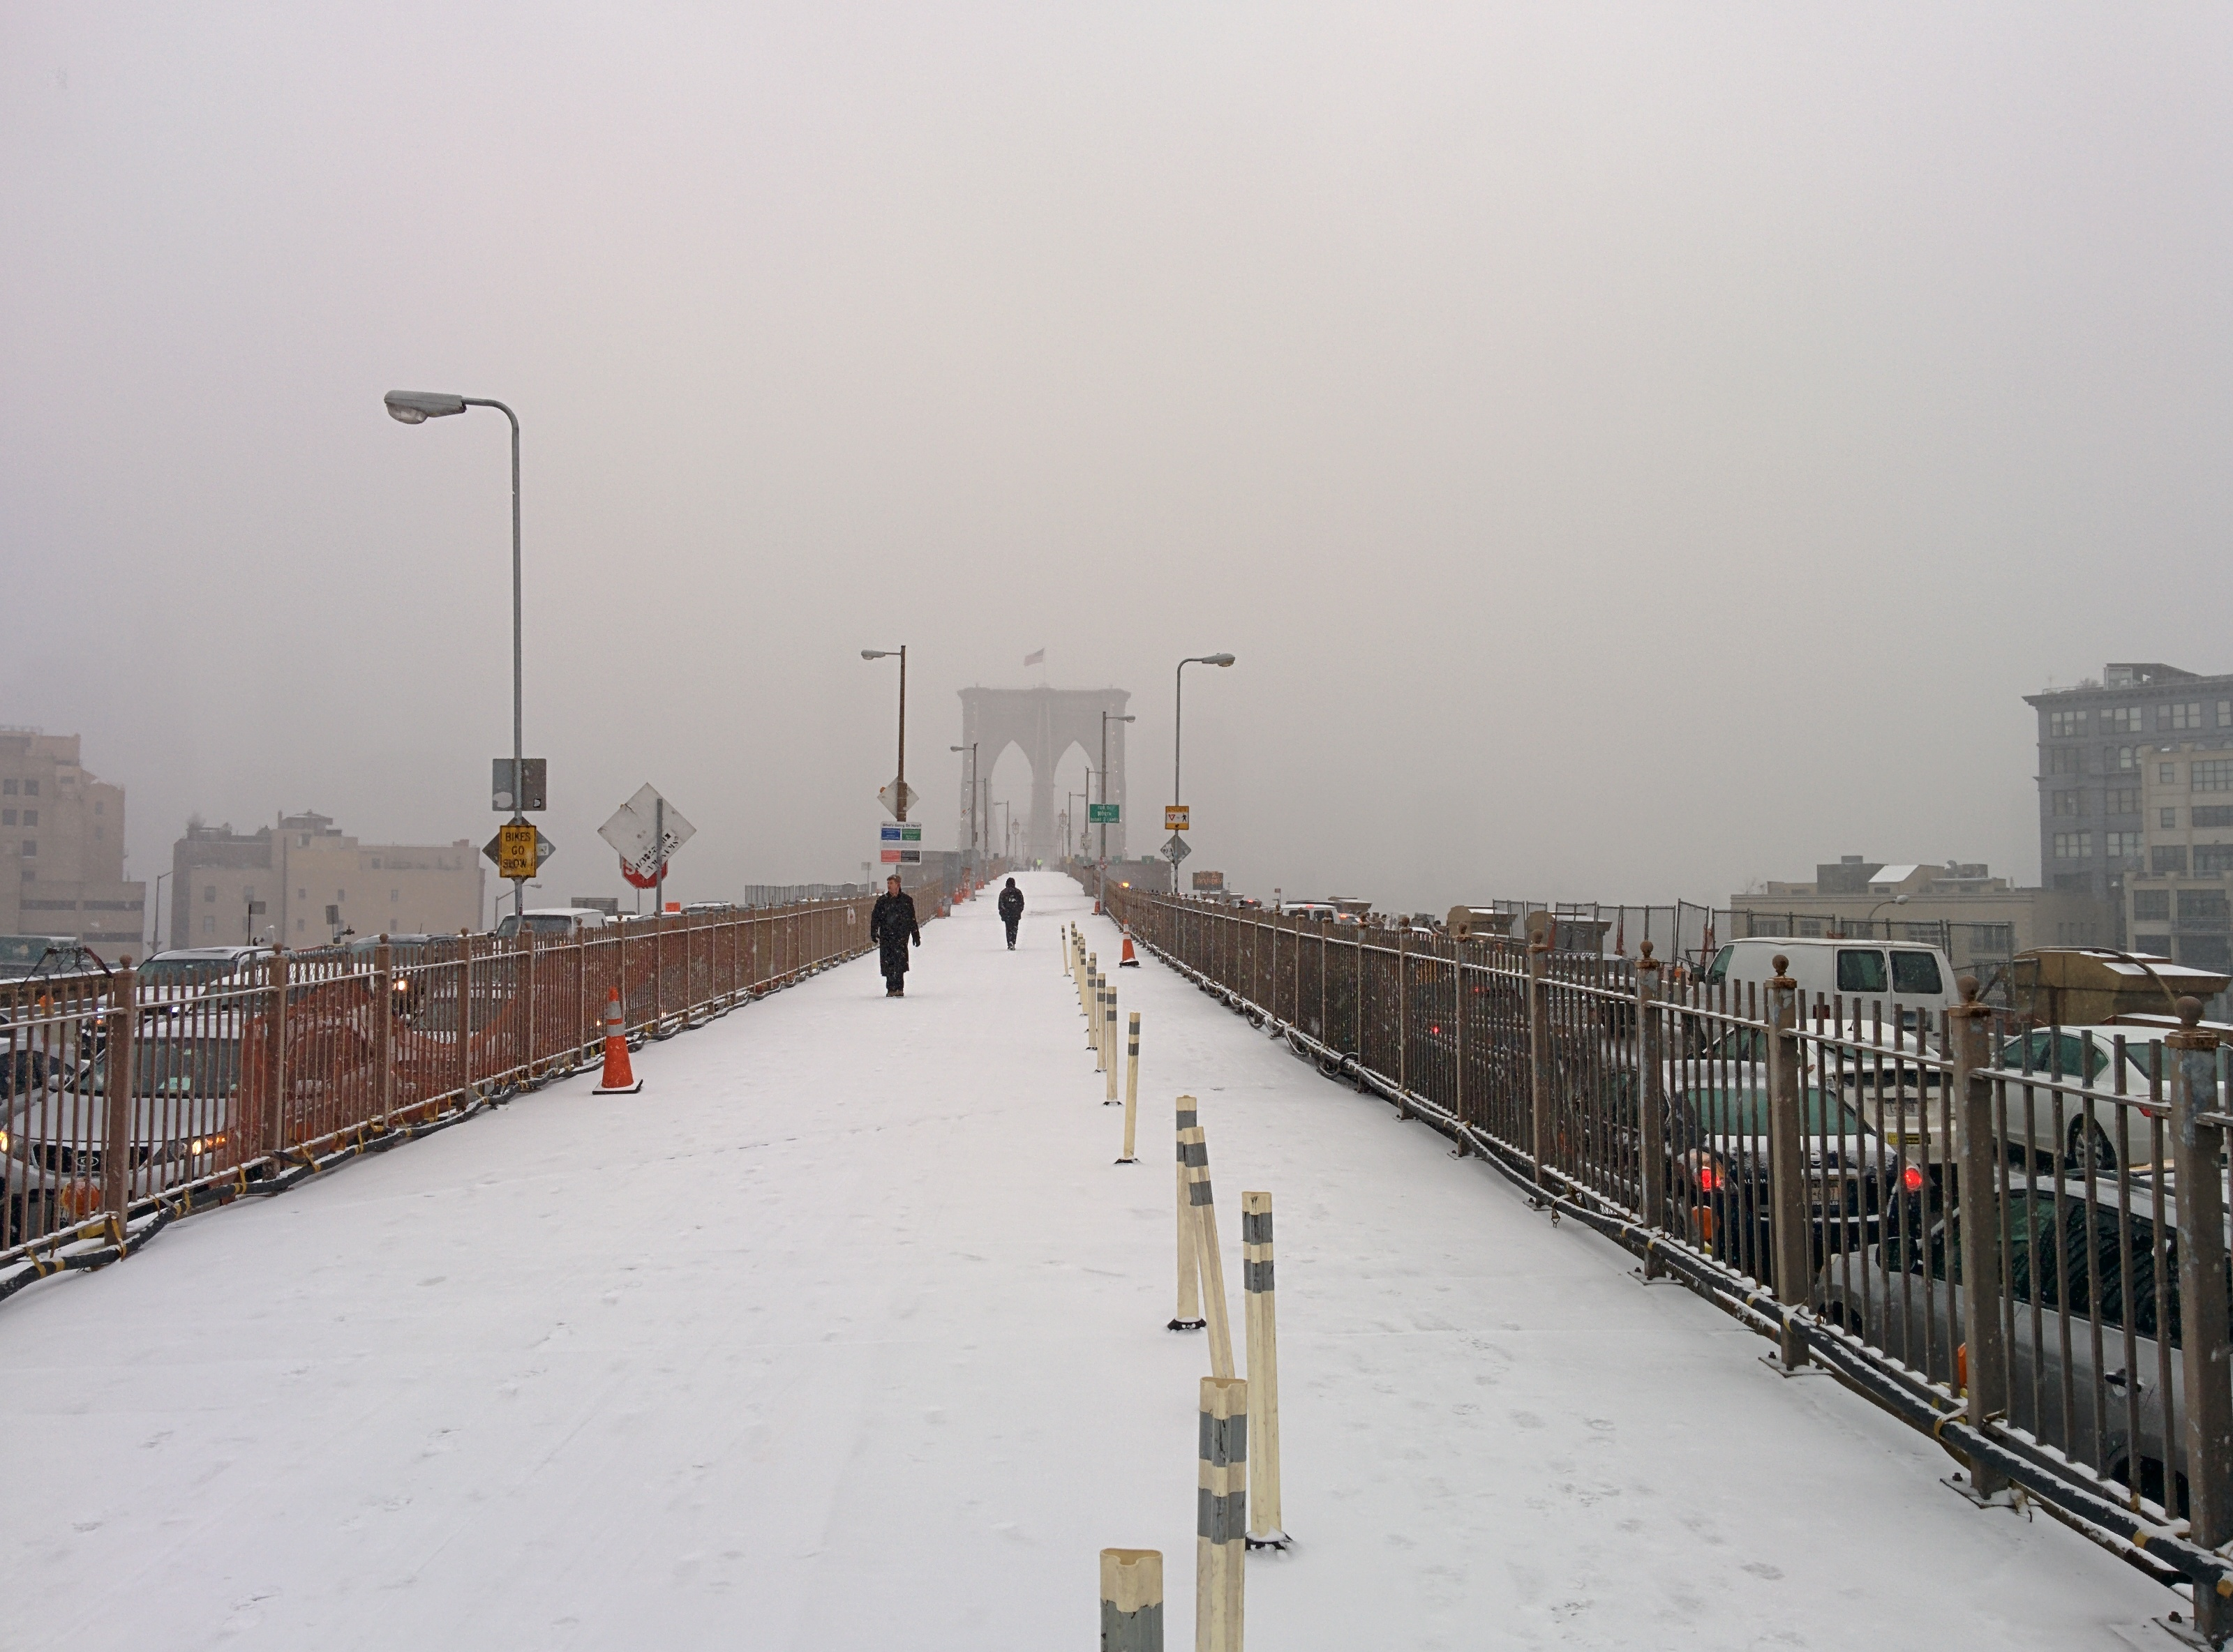 Brooklyn_Bridge_pedestrian_walkway_during_snow_storm_January_2014